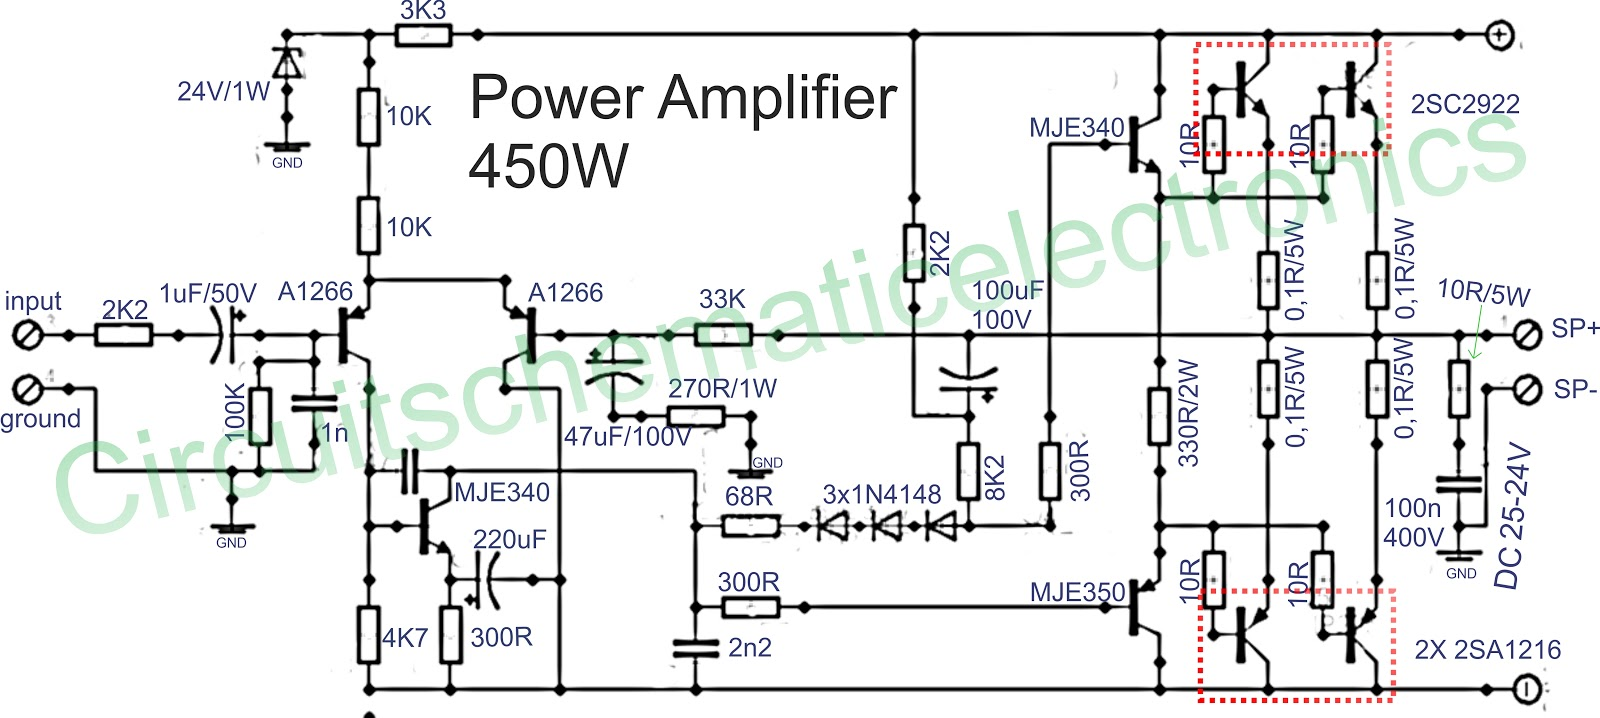 High+Power+amplifier+450+Watt+with+2+set+sanken power amplifier 450w with sanken electronic circuit amplifier schematic diagram at panicattacktreatment.co